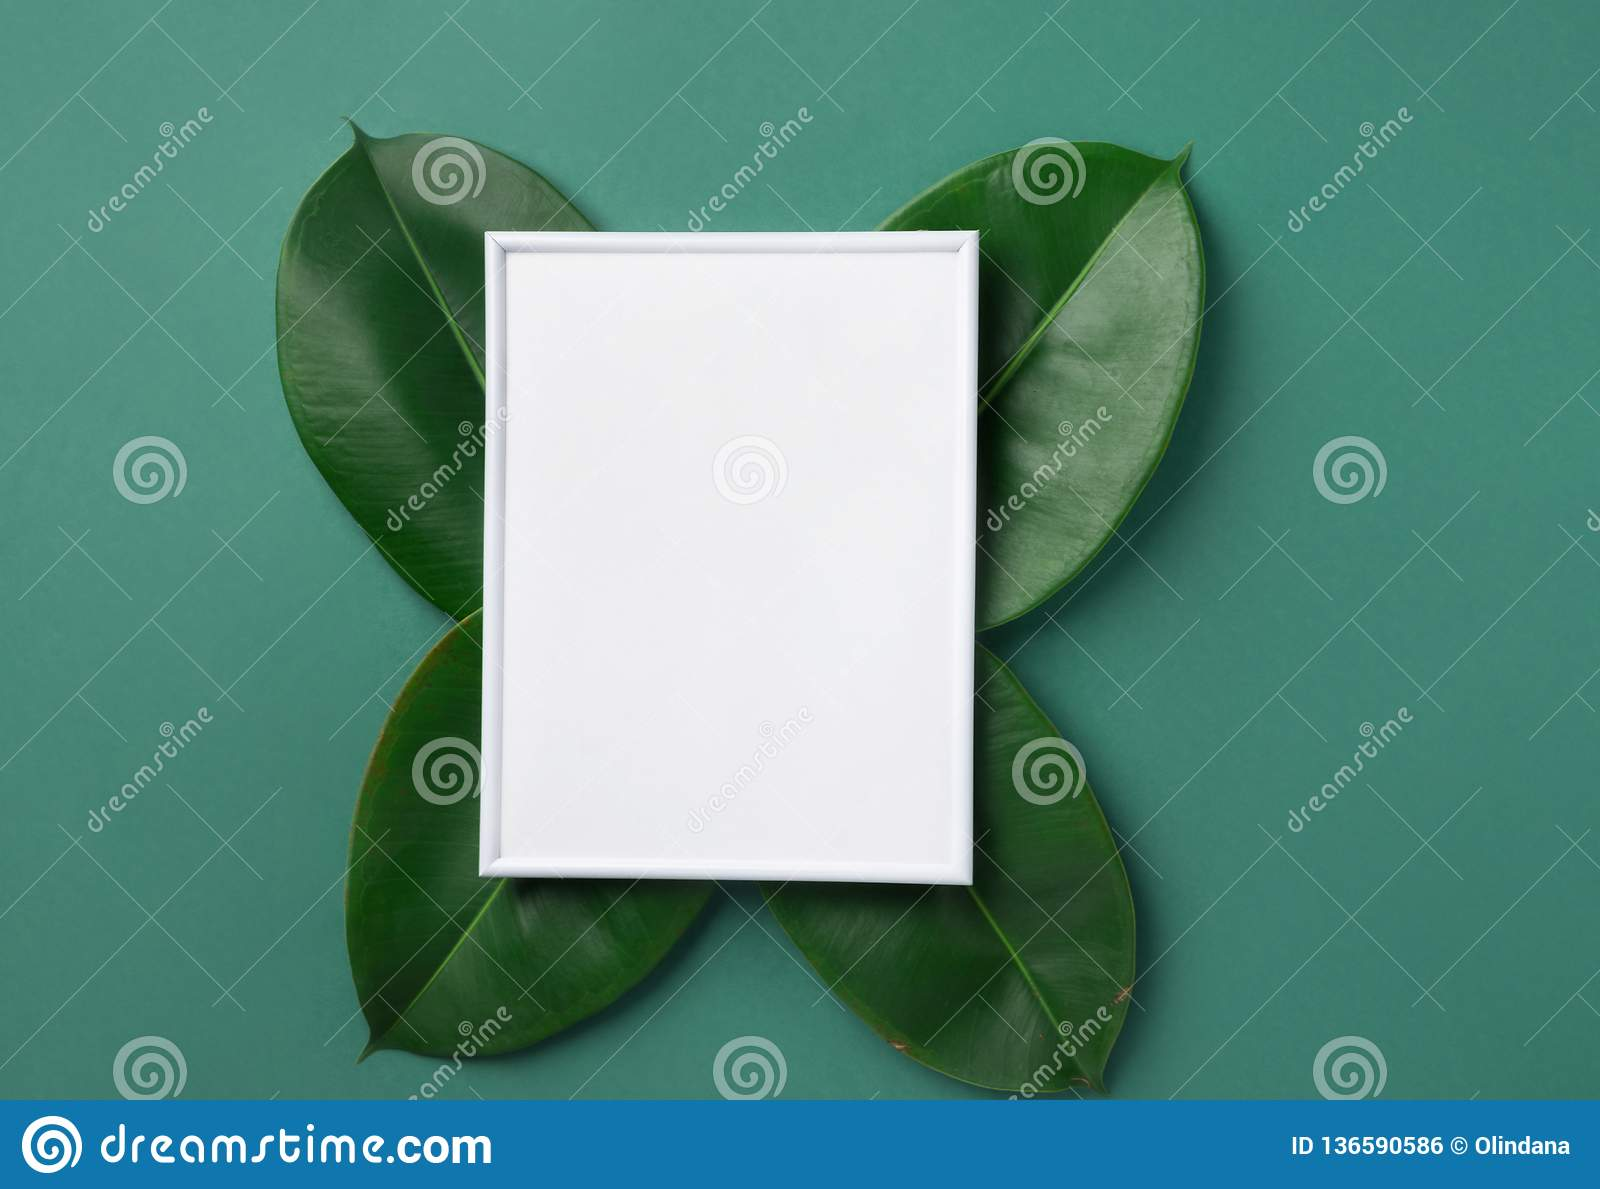 Aquarine Spa White Frame Mockup With Beautiful Big Green Ficus Leaves On